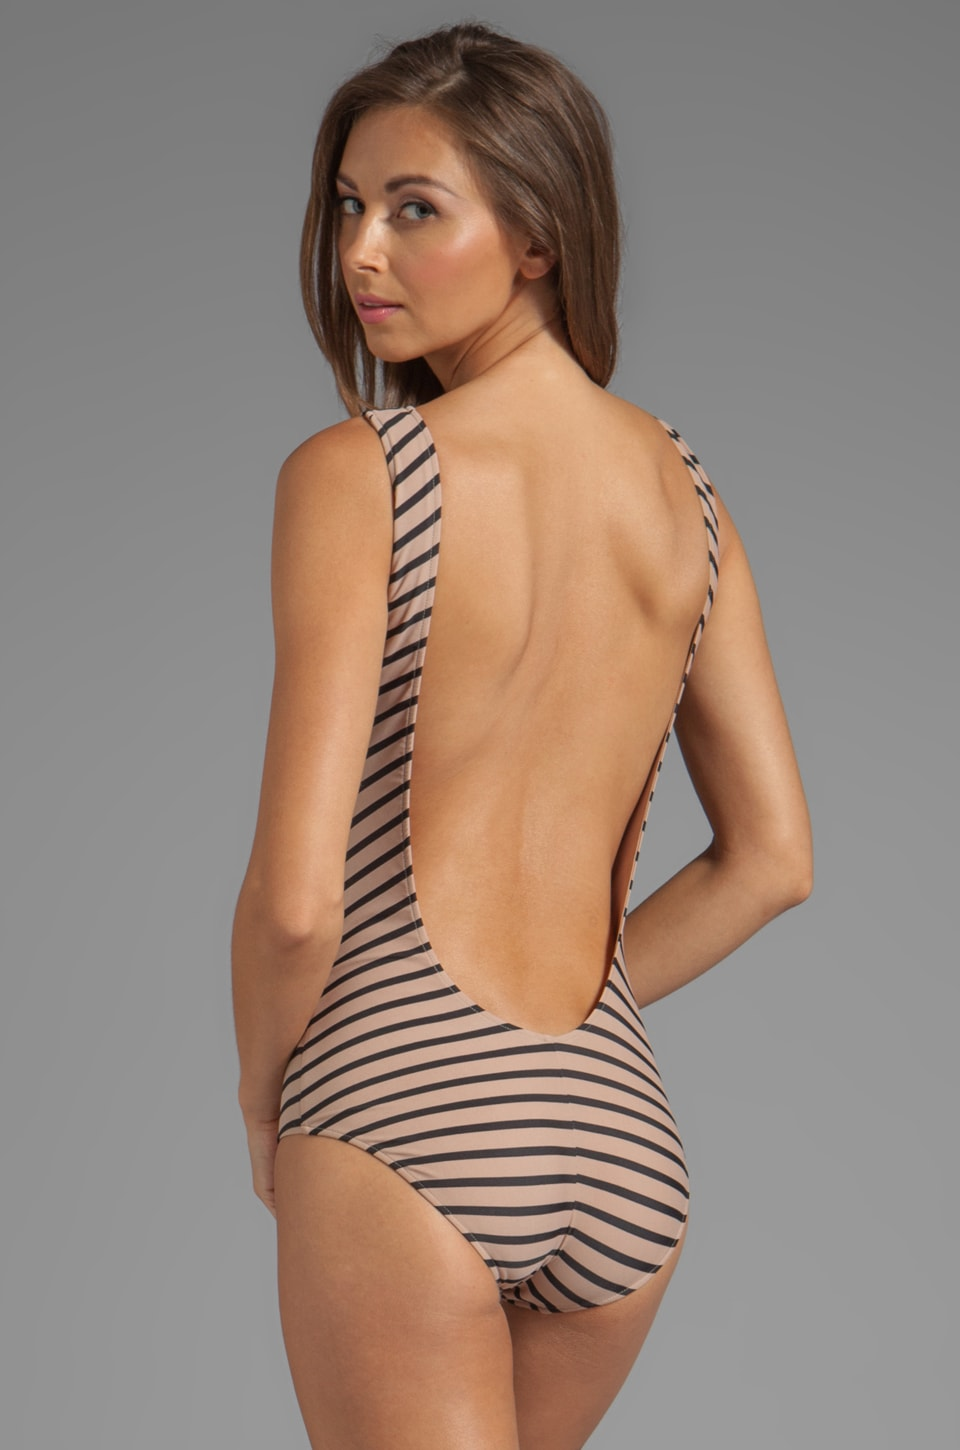 Rachel Pally Liya Maillot in Black Stripe